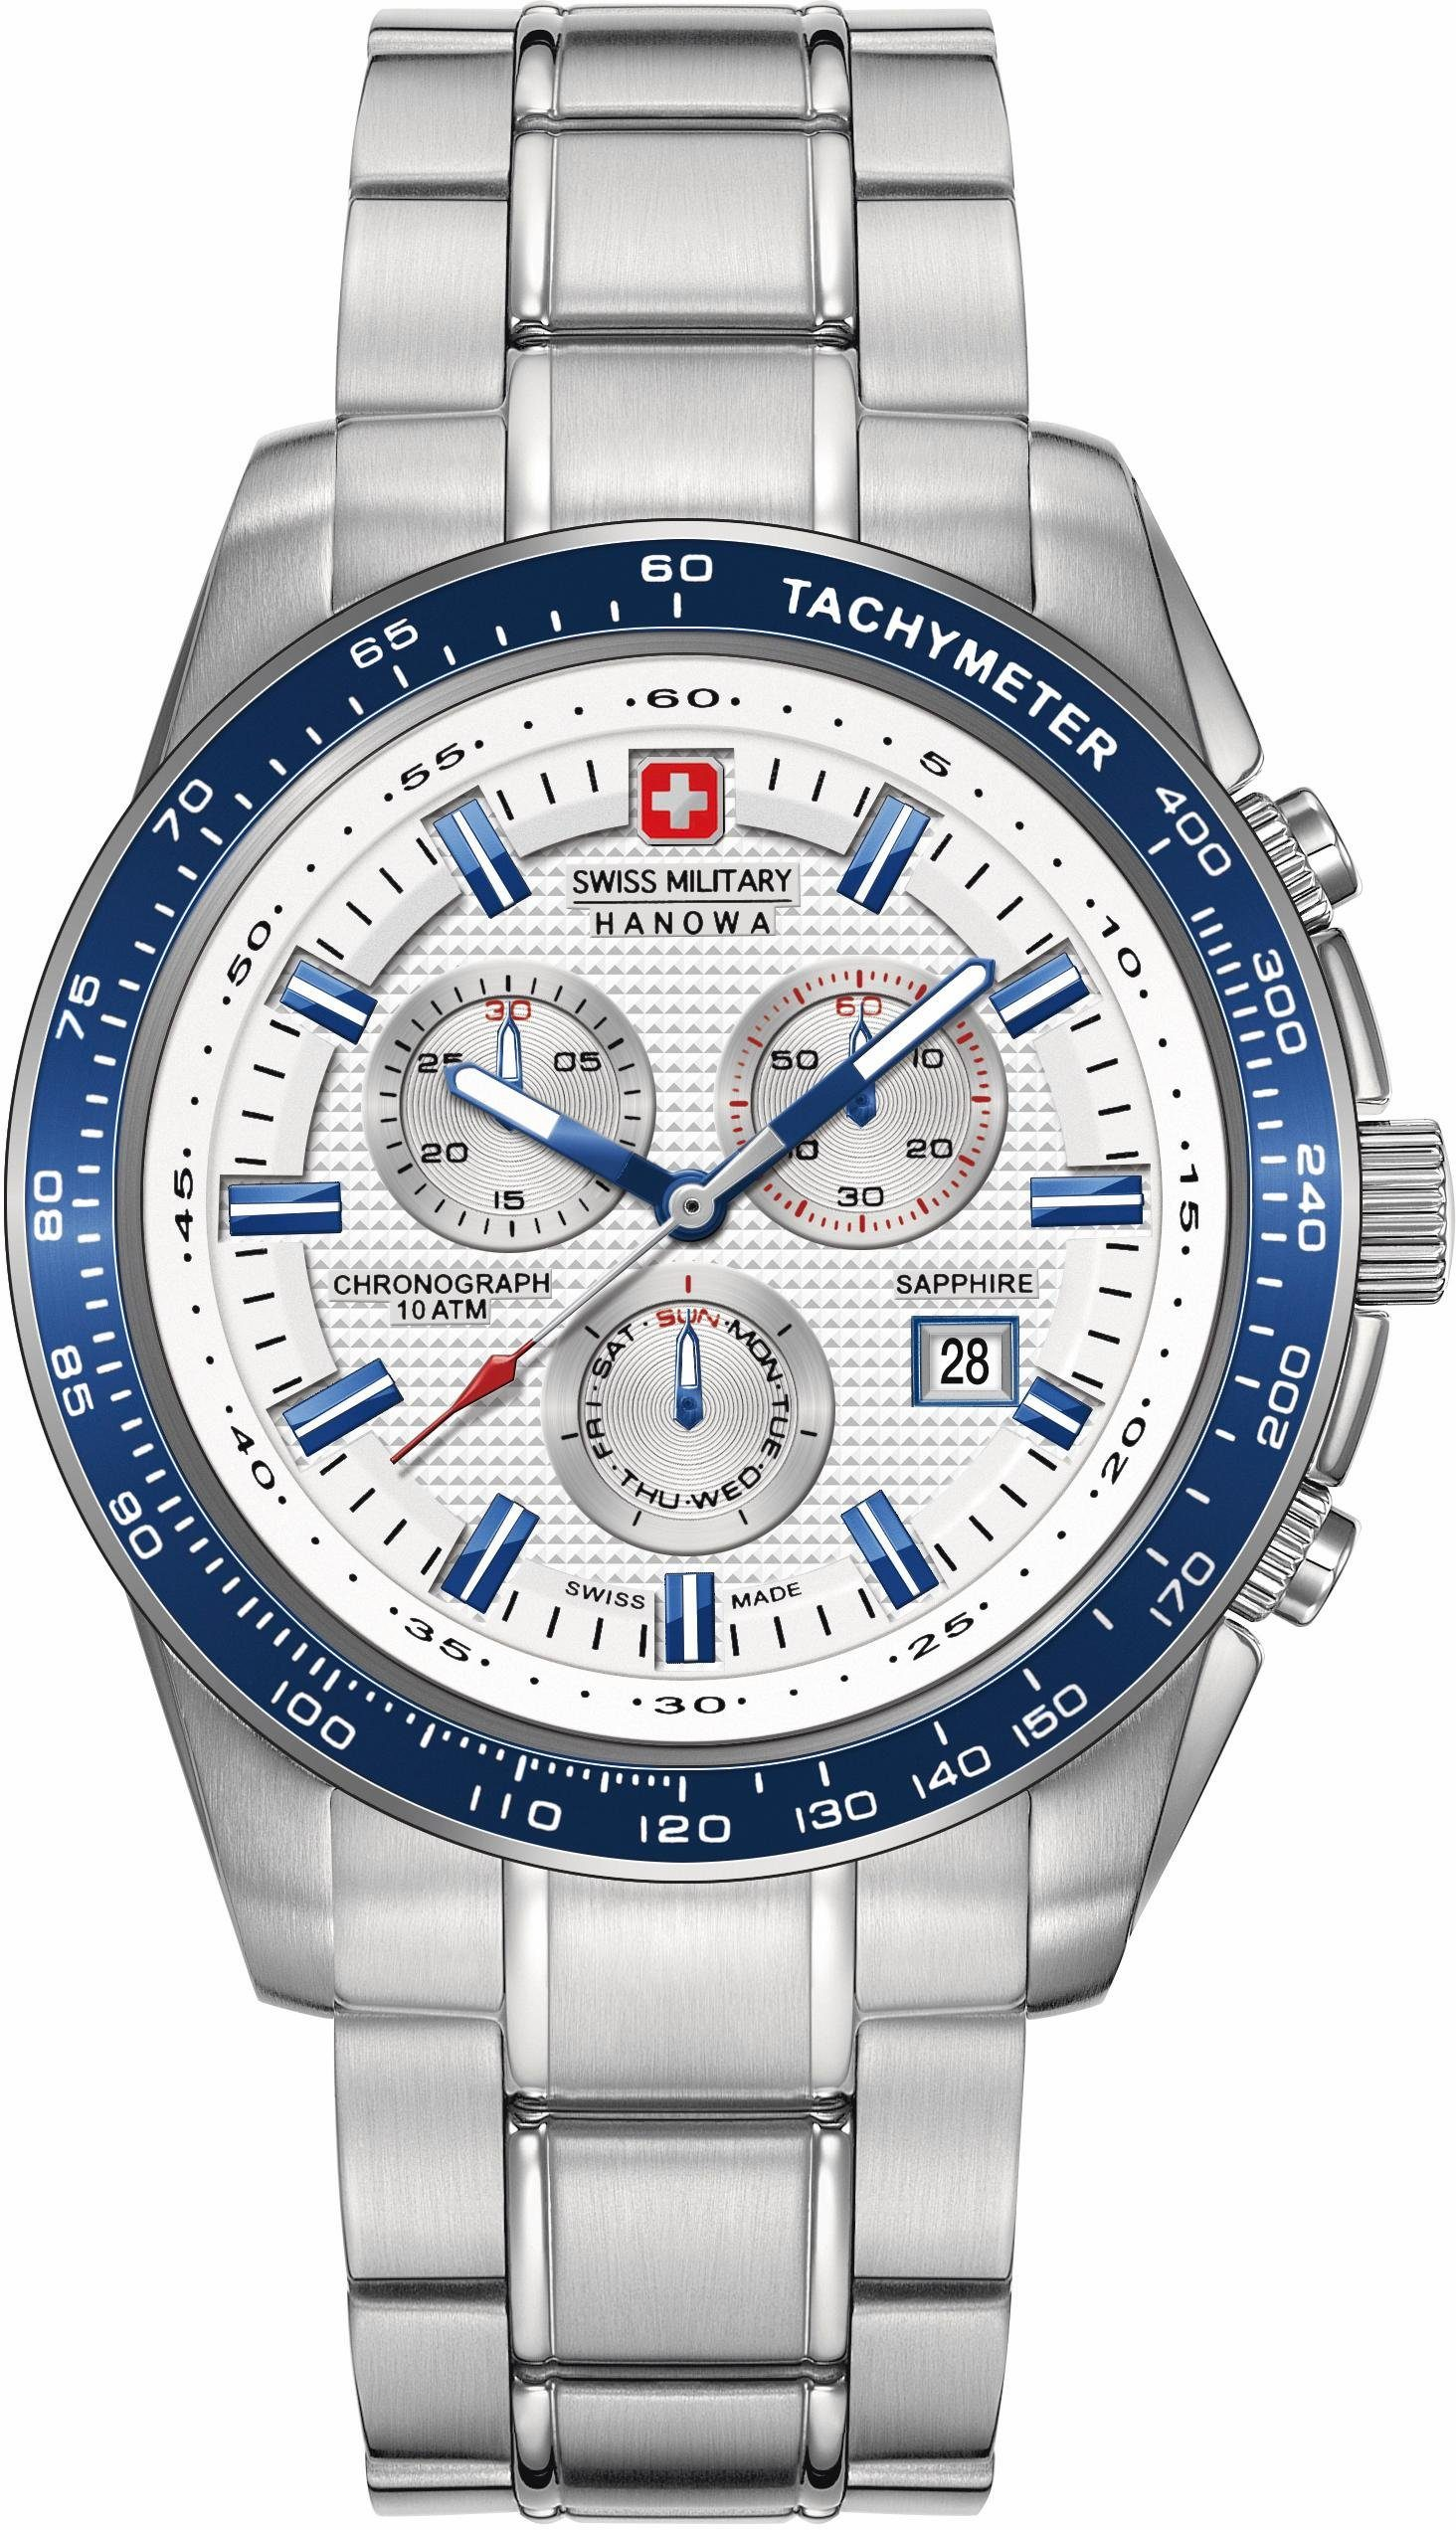 Swiss Military Hanowa Chronograph »CRUSADER CHRONO, 6-5225.04.001.03«